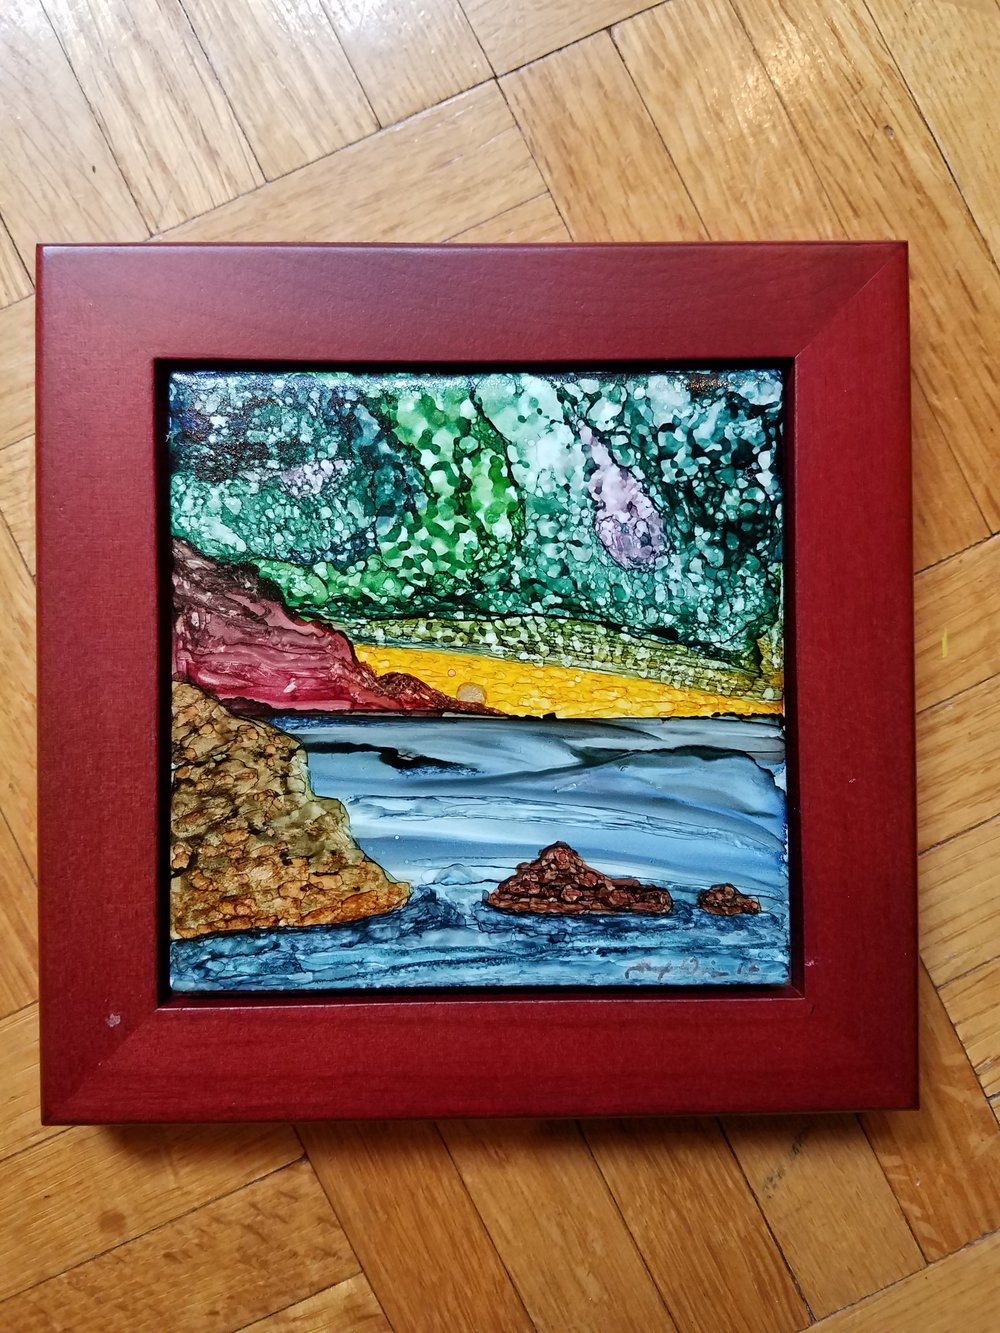 4x4 & 6x6 framed Alcohol Ink tiles